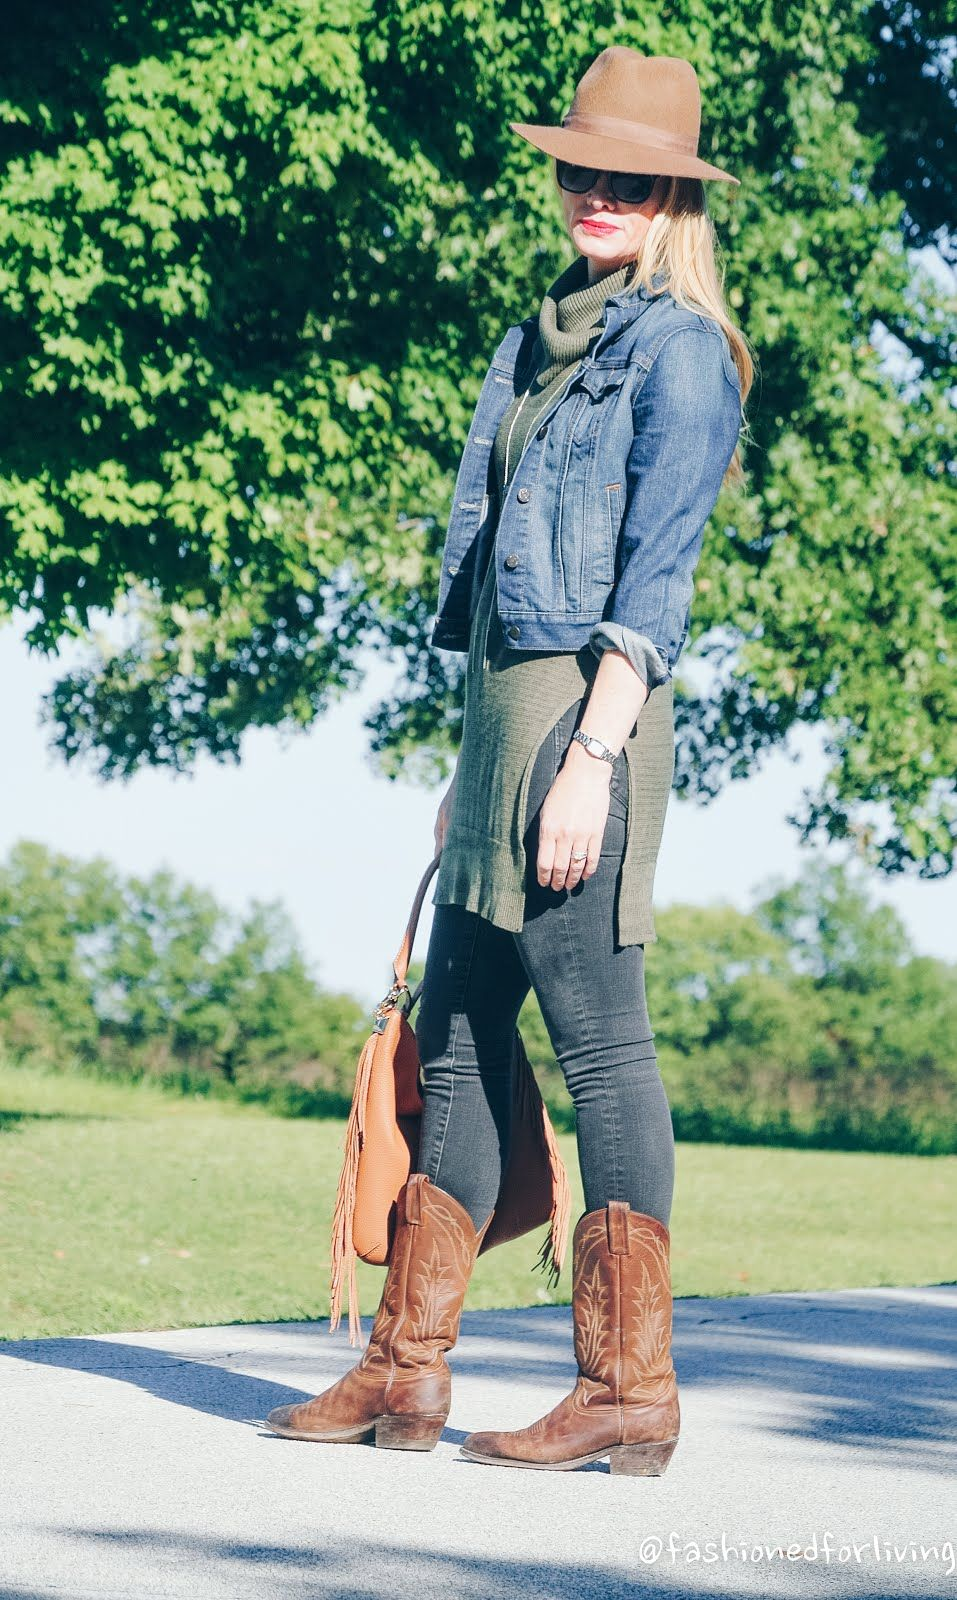 Olive Sleeveless Tunic With Denim Jacket Black Skinny Jeans And Cowboy Boots Fall Outfit Black Skinny Jeans Fall Boots Outfit Black Skinnies [ 1600 x 957 Pixel ]